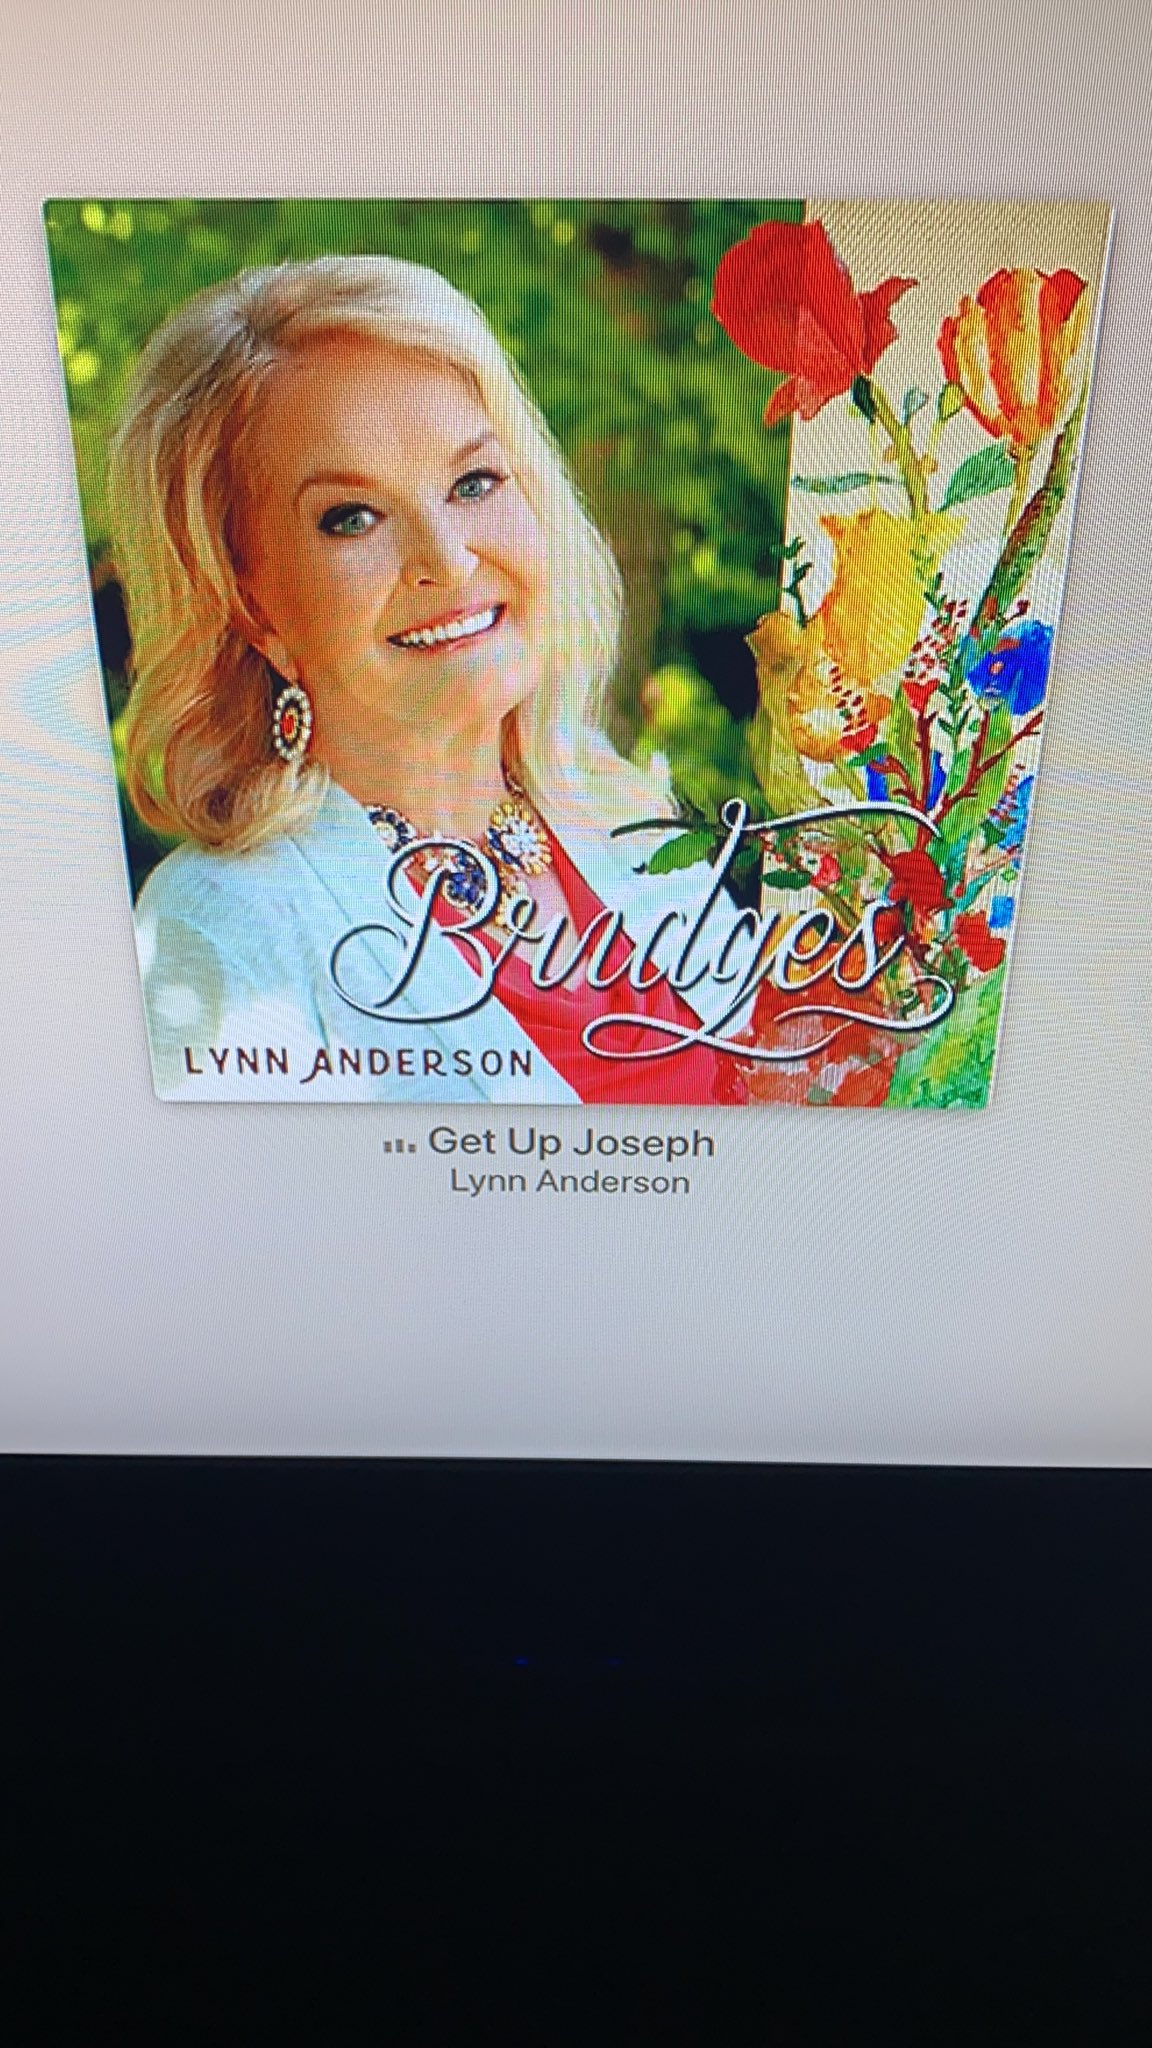 TidBit: We recorded Get Up Joseph with @LynnAshow on her very last project ... https://t.co/YQj1FG96l1